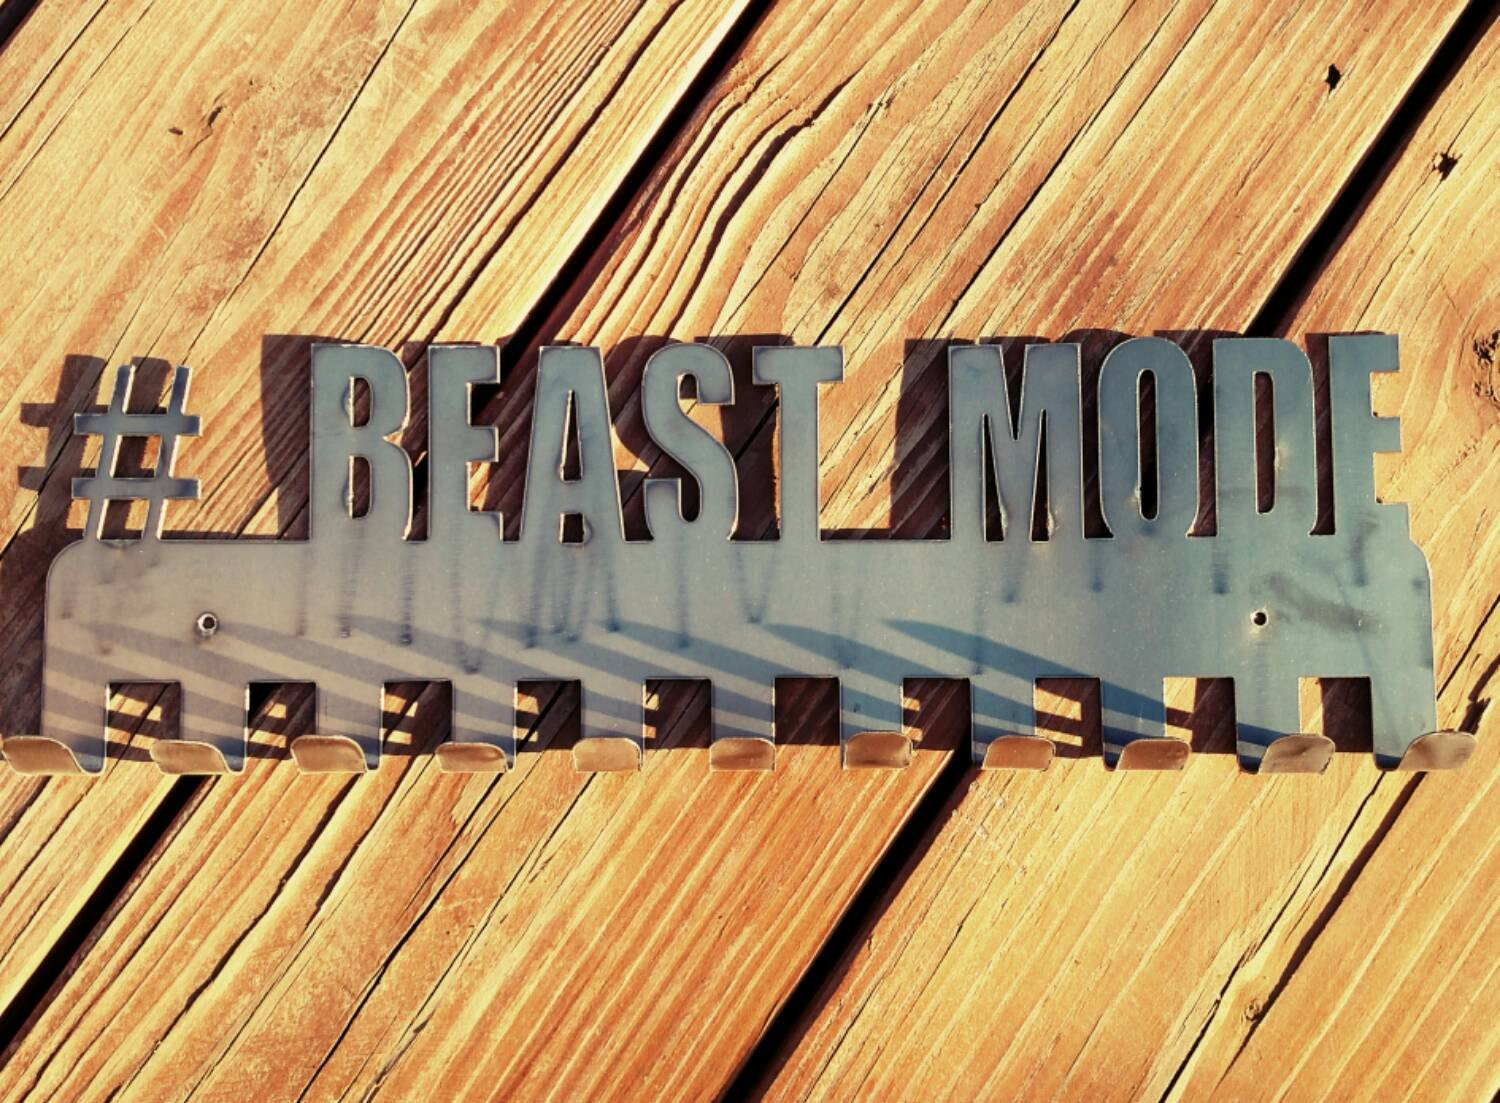 Beast Mode #Beast Mode medal display